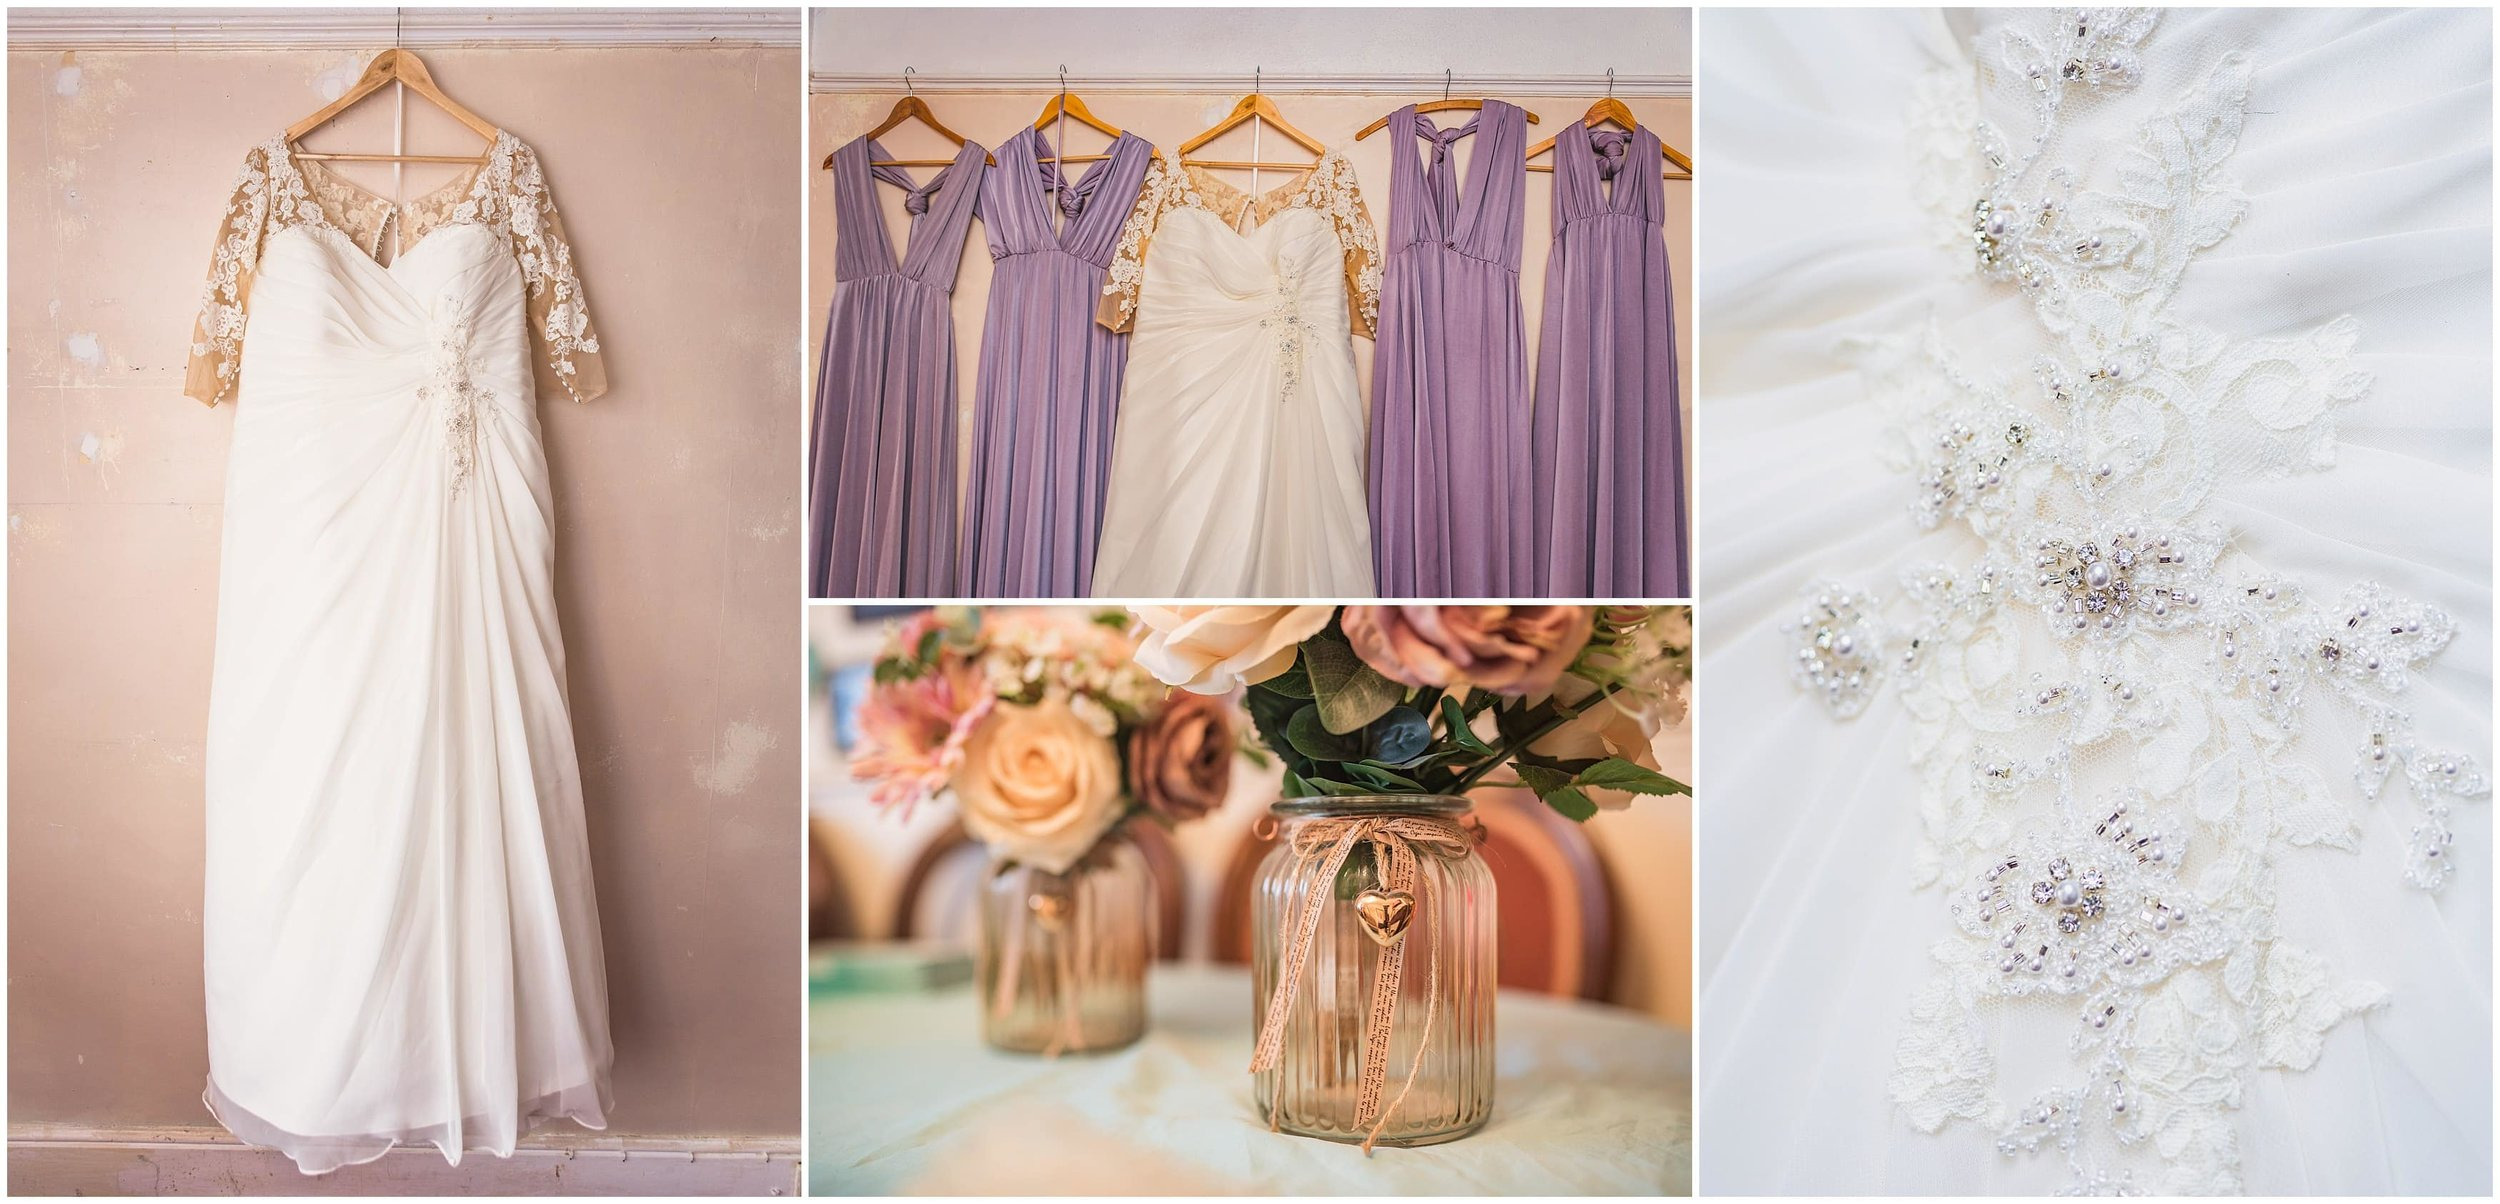 Brides dress and details at a lovely autumn Surrey wedding